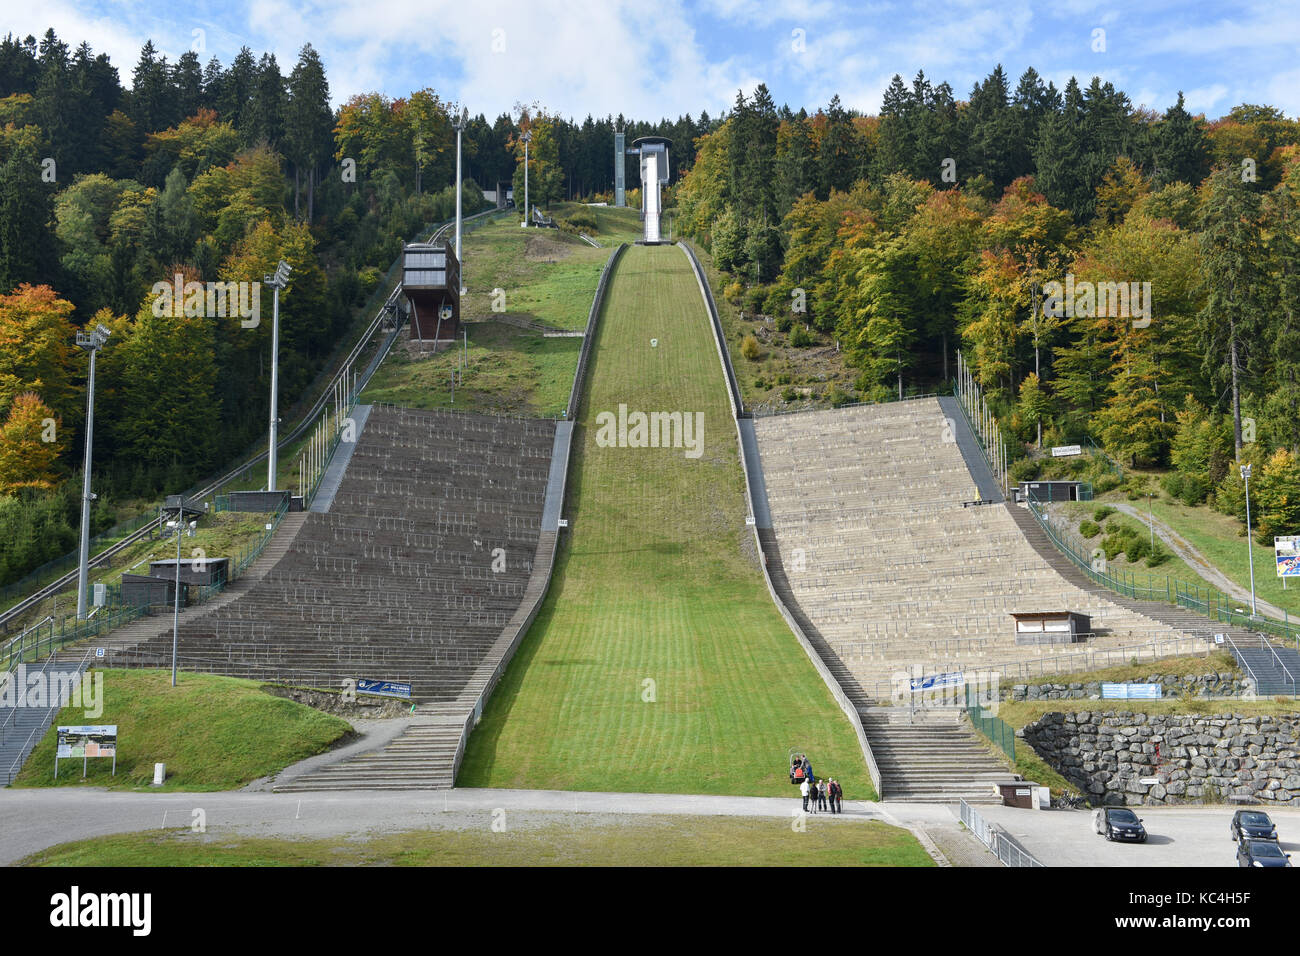 Willingen, Germany. 29th Sep, 2017. View of the Muehlenkopf jump ('Muehlenkopfschanze') in Willingen, Germany, - Stock Image